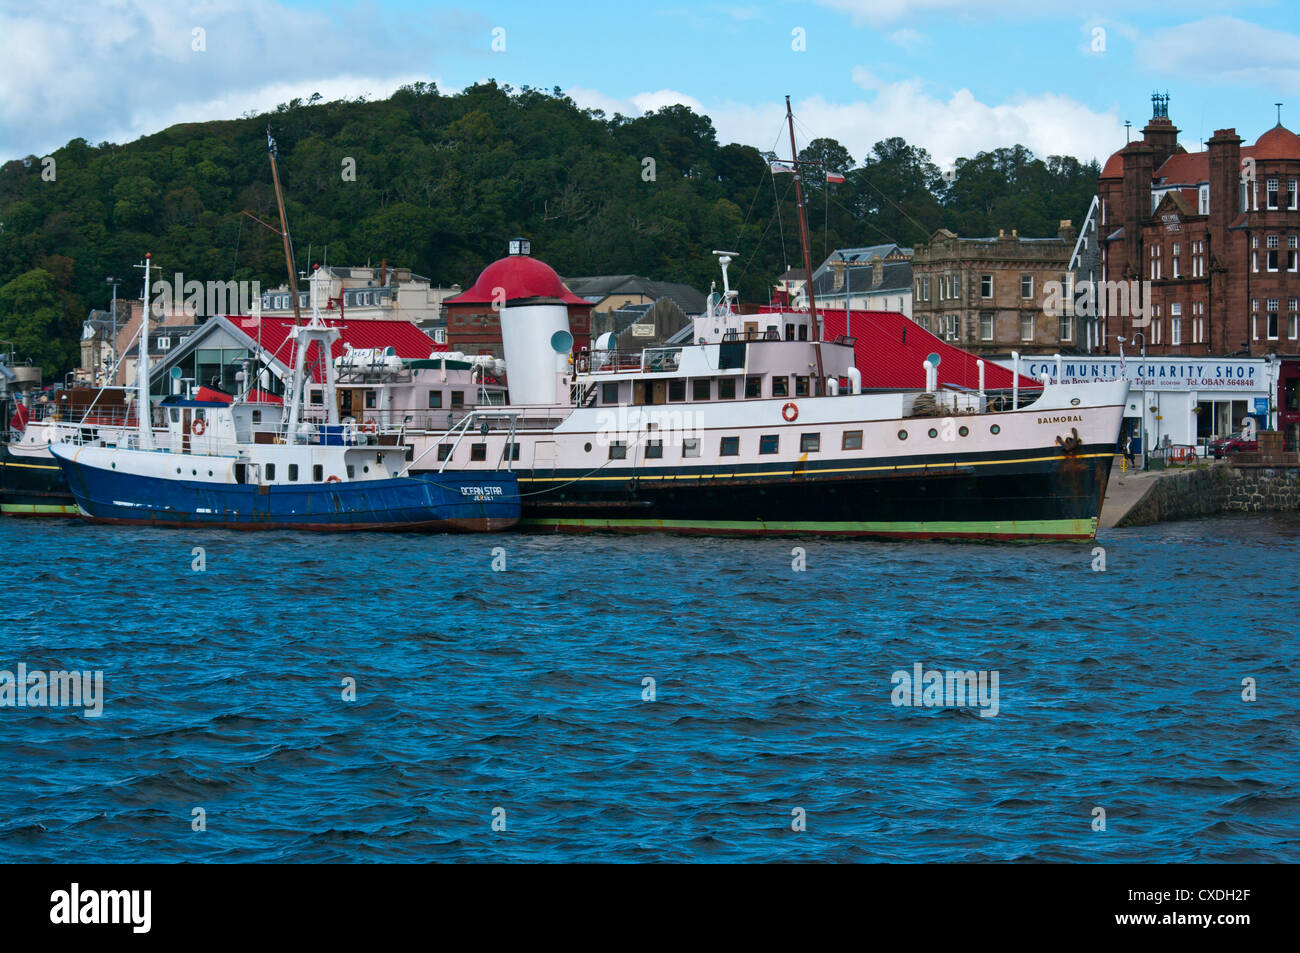 Boats Moored at The North Pier Oban Argyll and Bute Scotland Including The Passenger Ship Balmoral - Stock Image